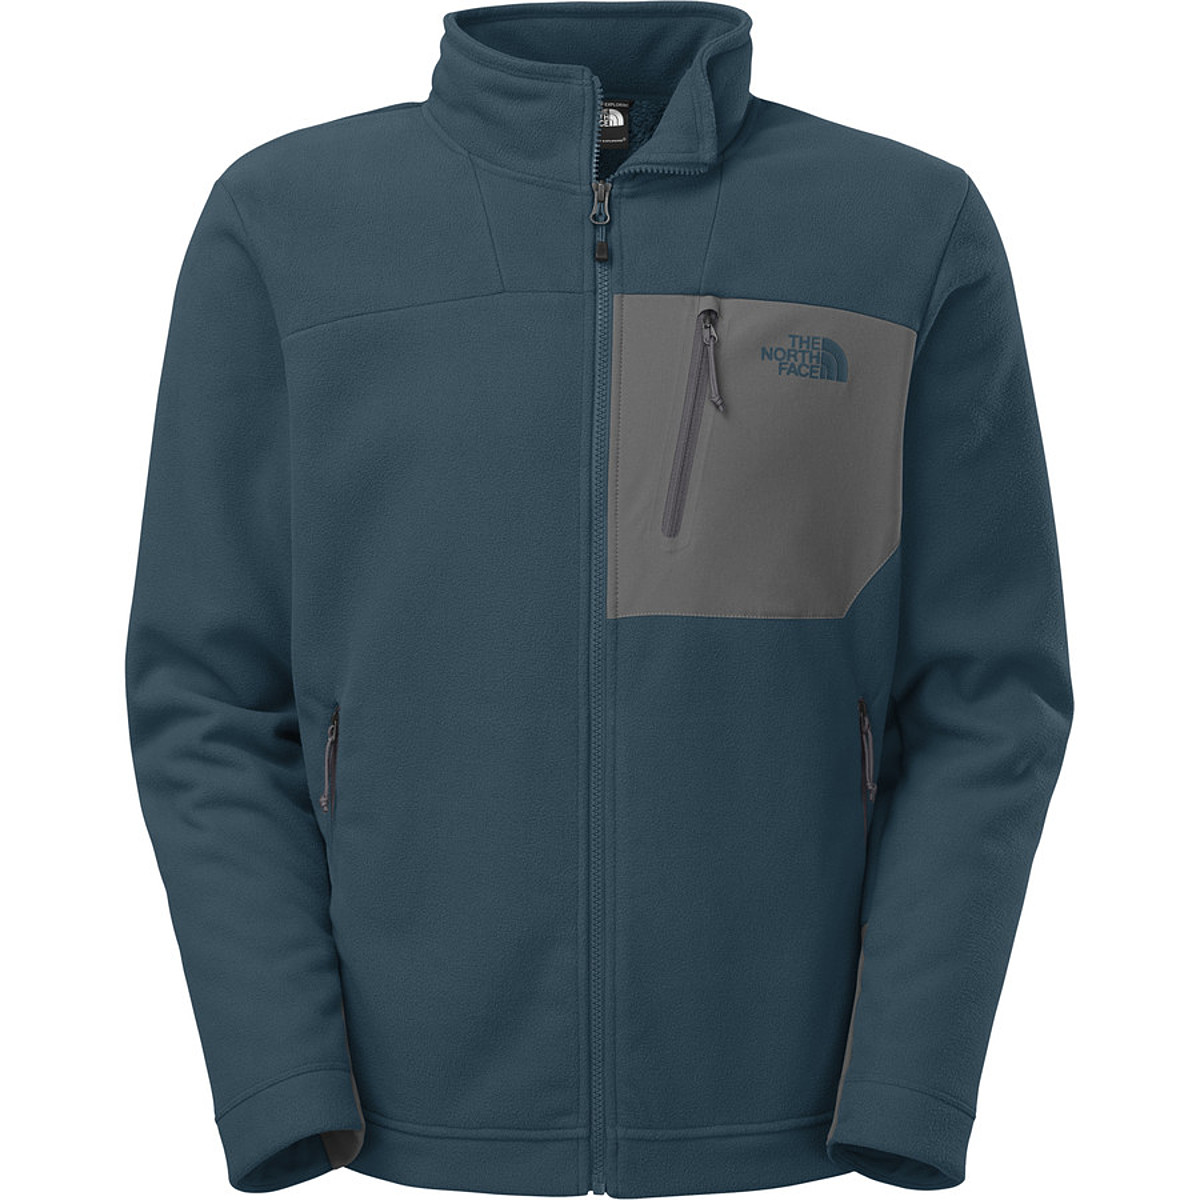 The North Face Chimbarazo Full Zip